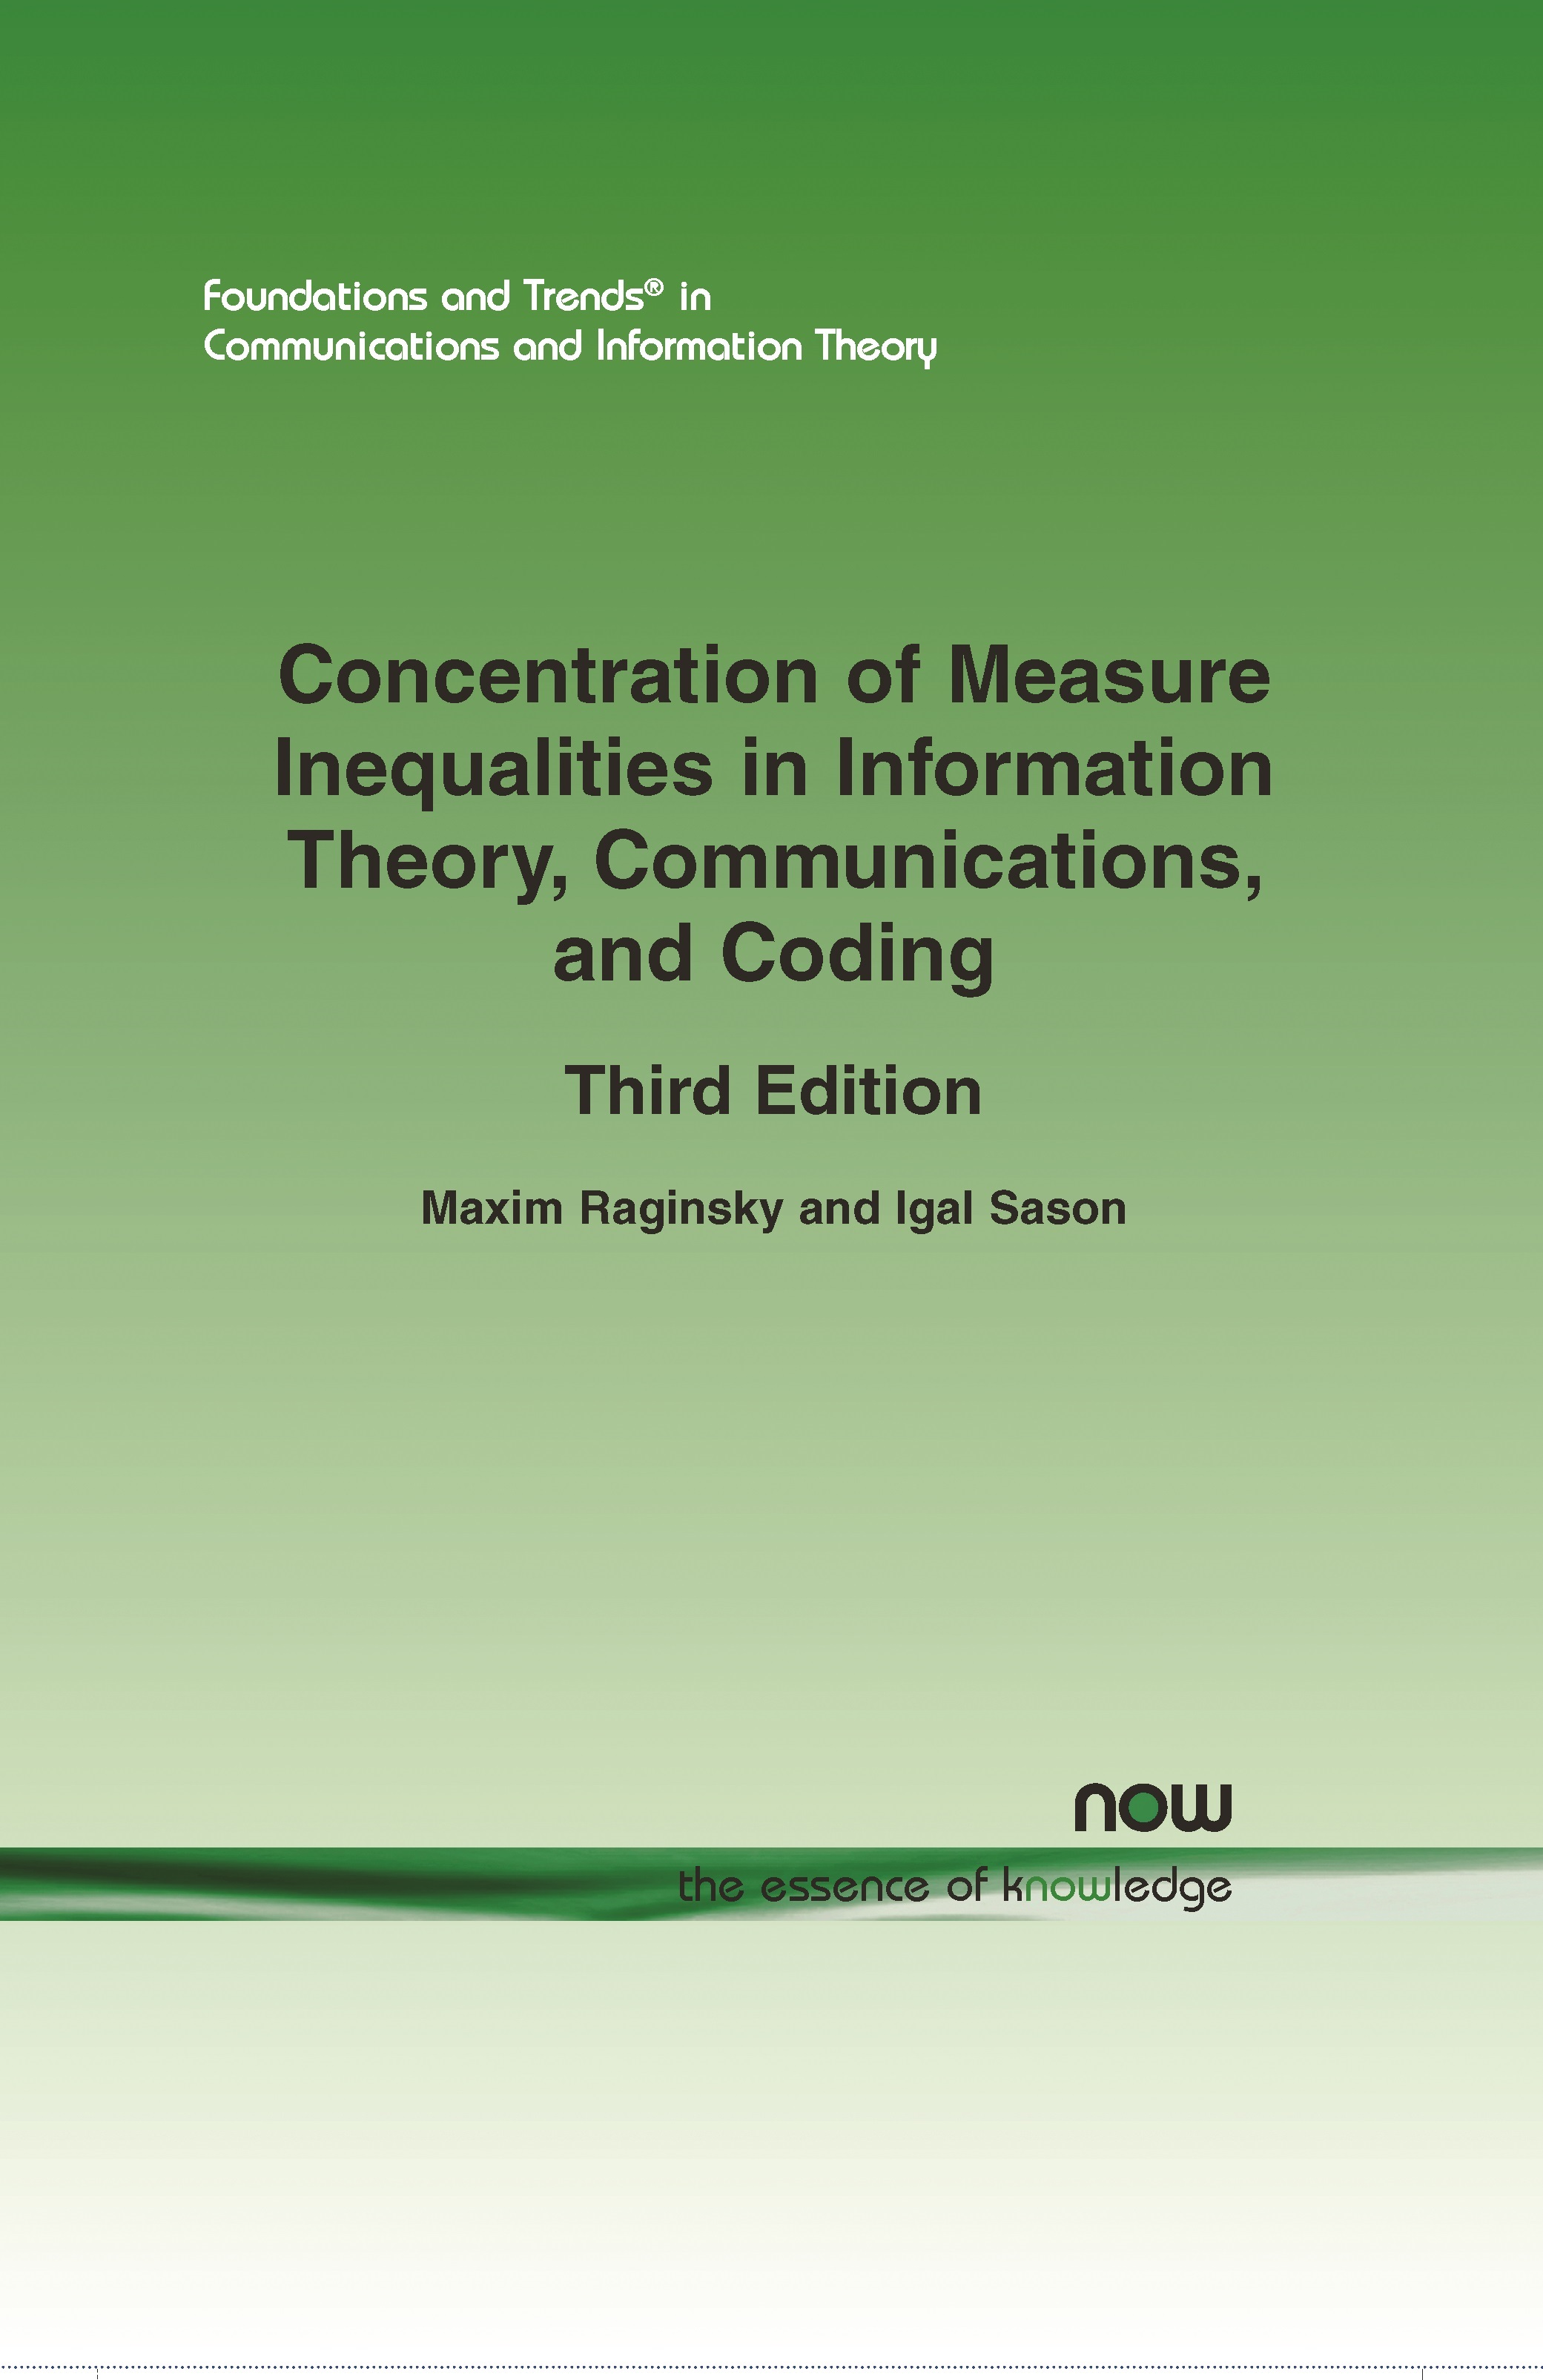 Concentration of Measure Inequalities in Information Theory, Communications, and Coding: Third Edition